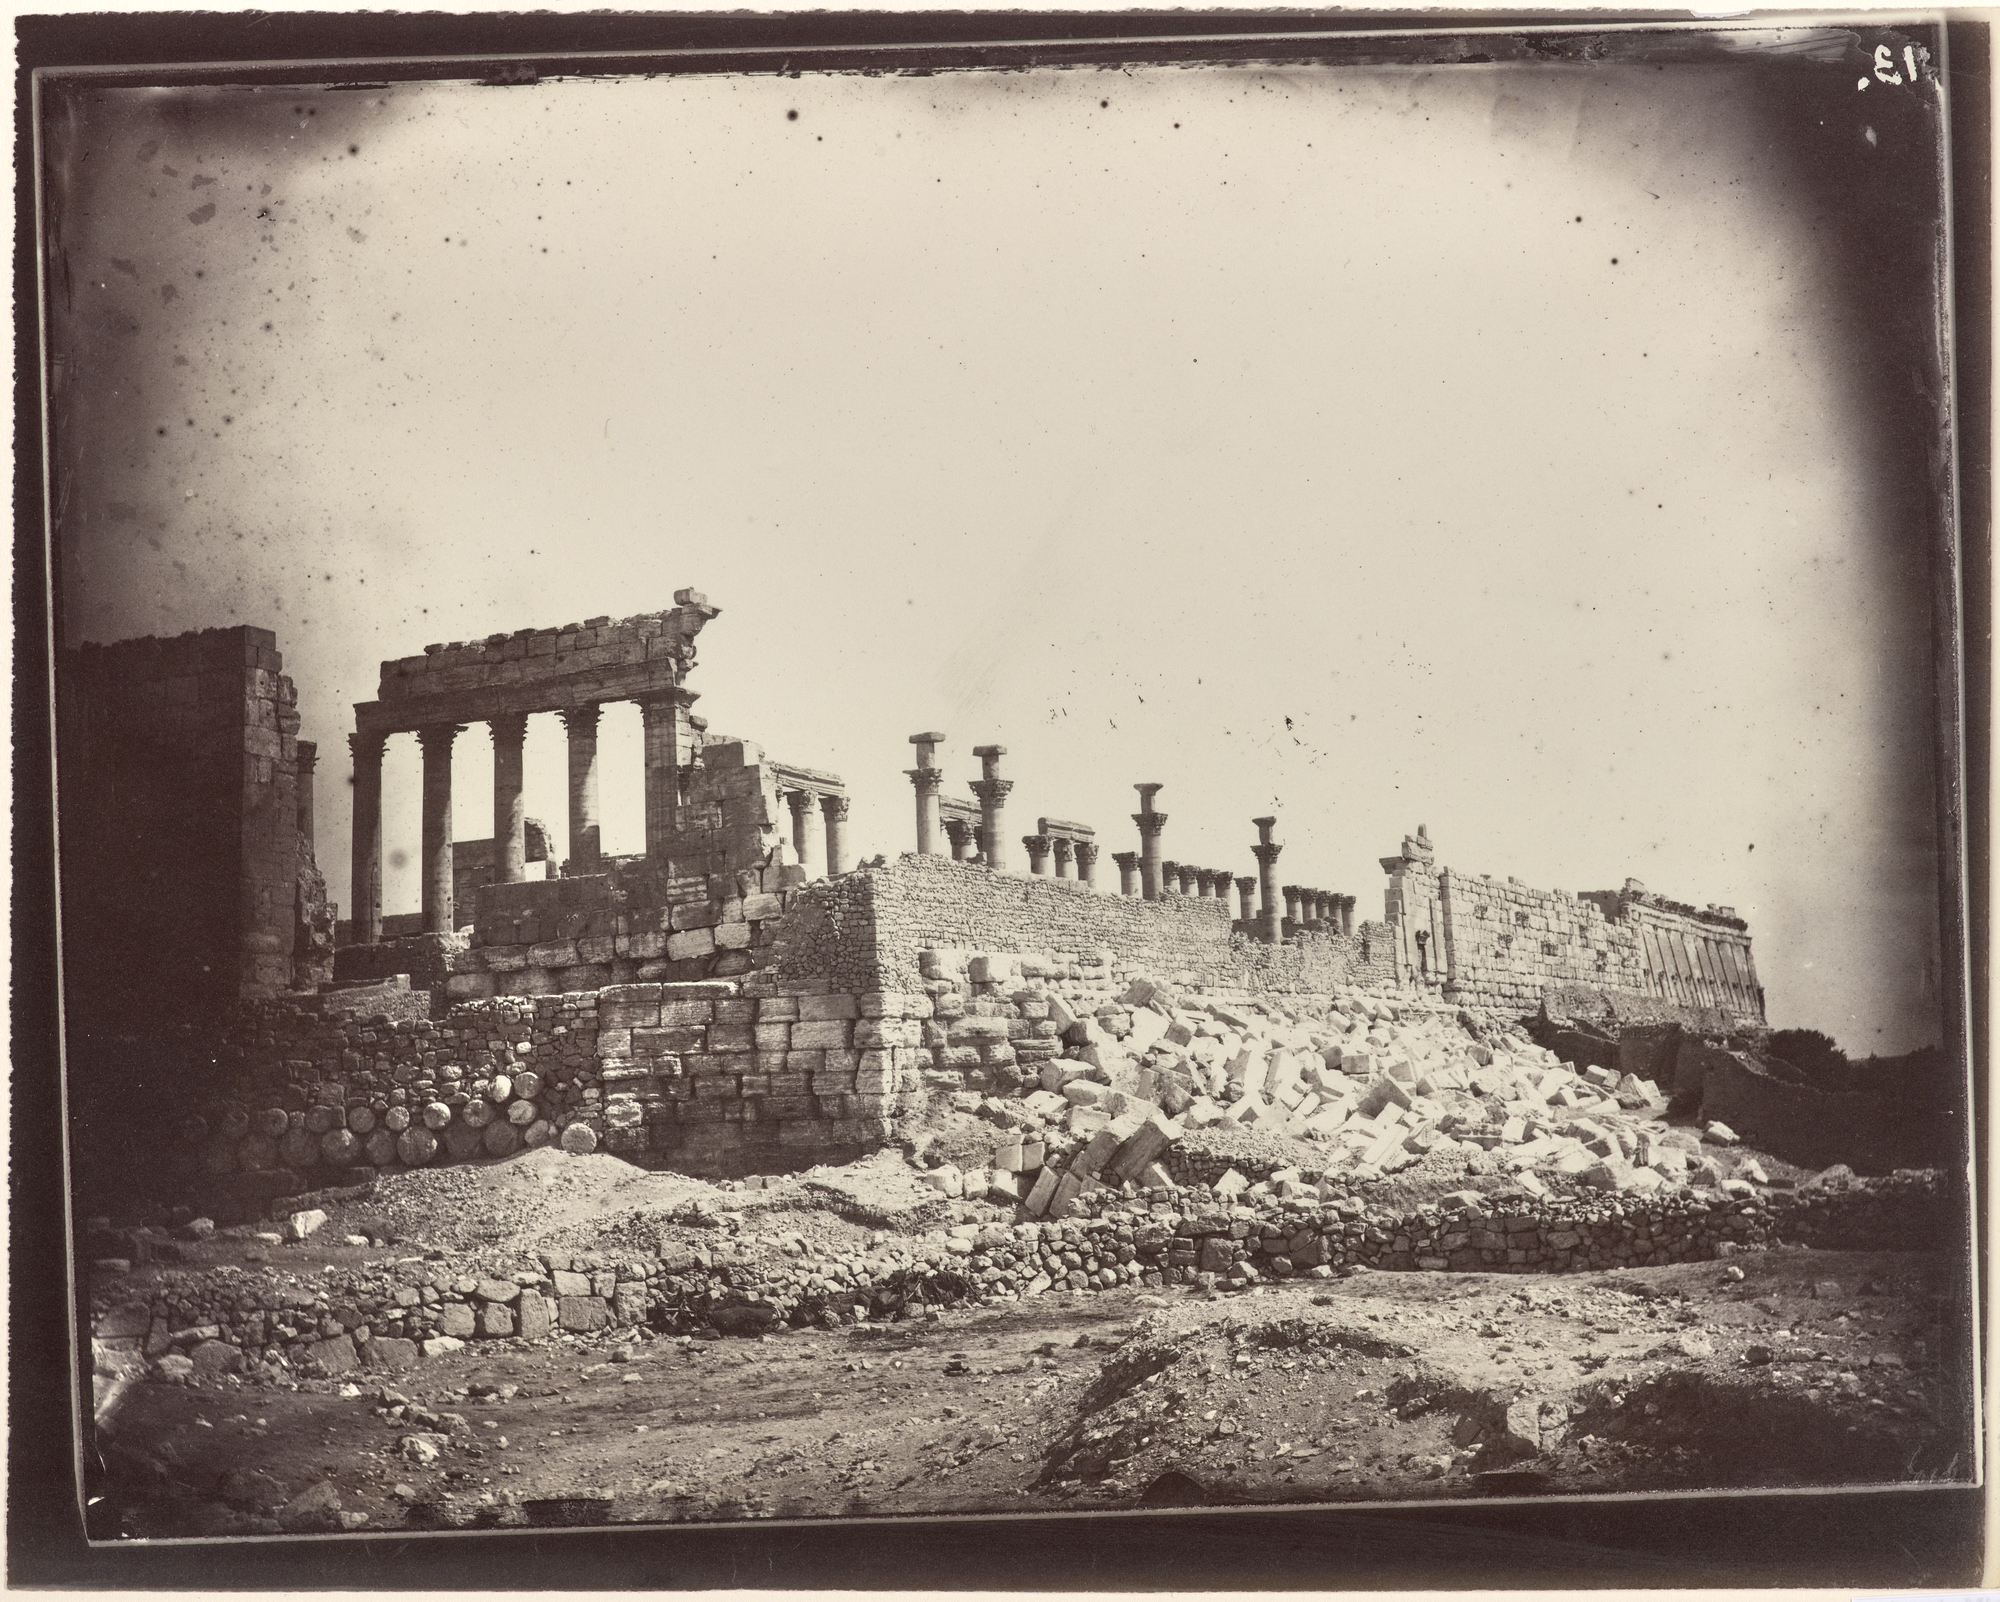 Photograph of ancient ruins with columns.